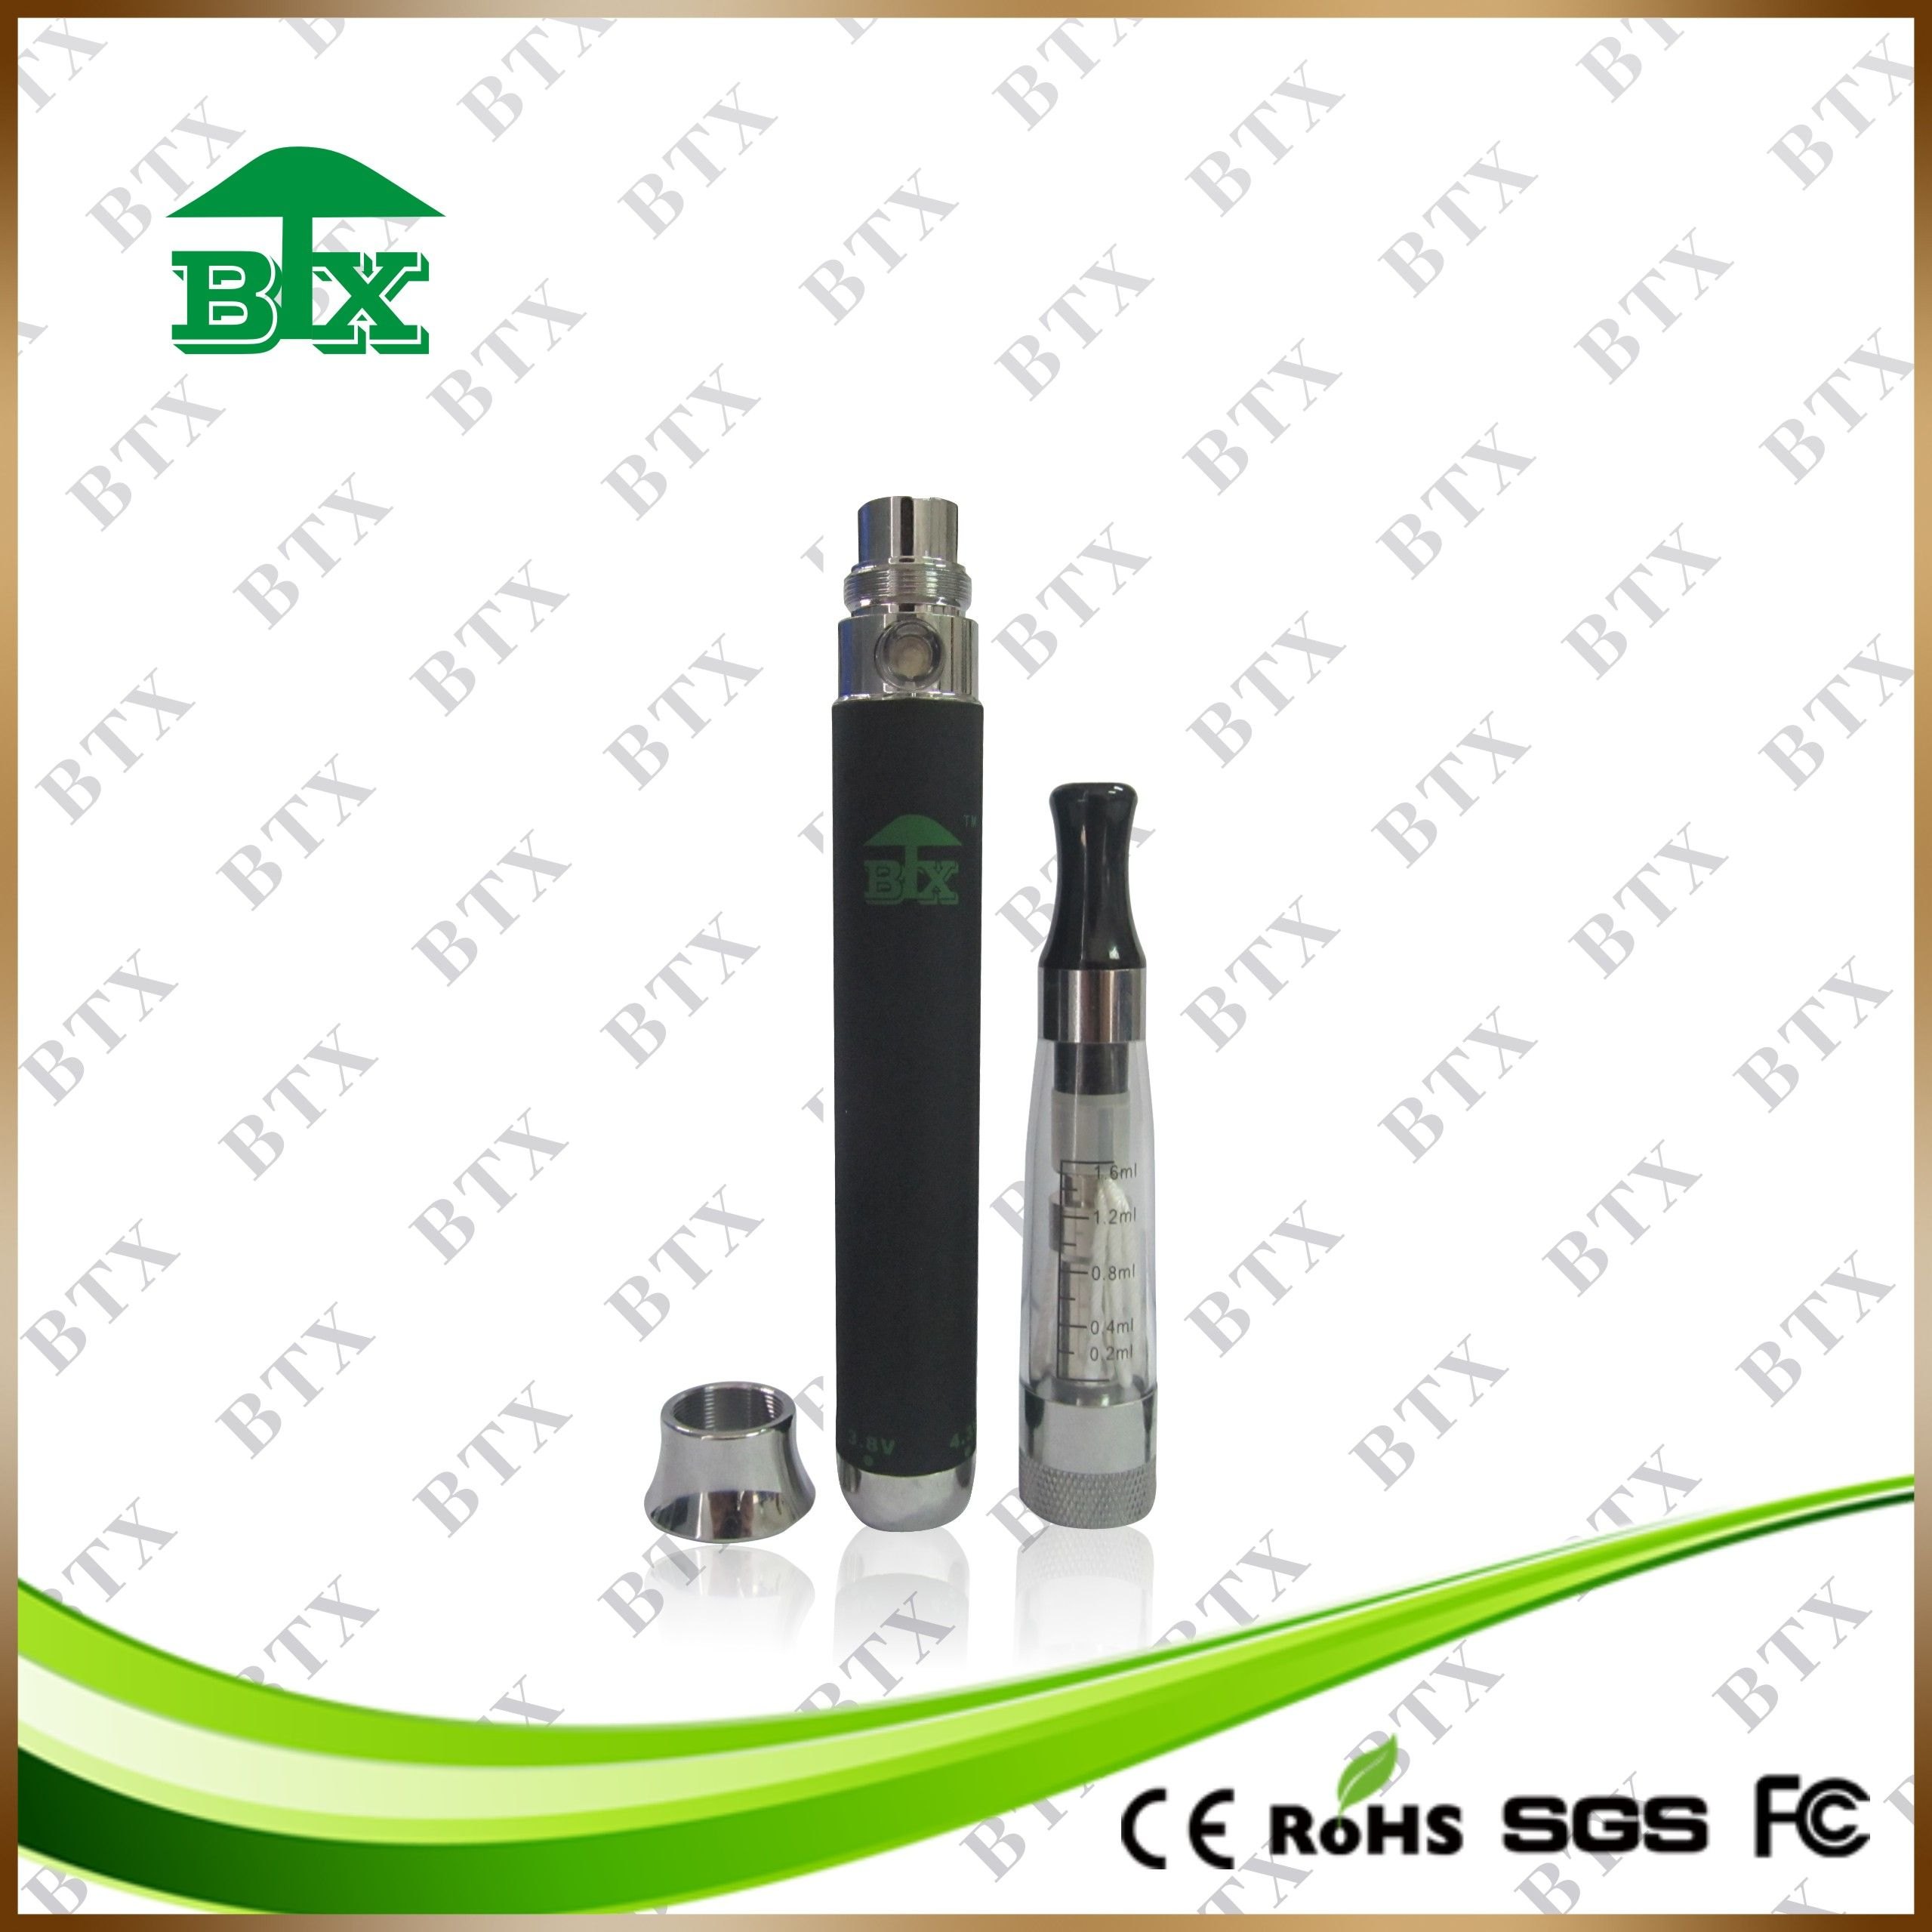 Do you interested in the electronic cigarette? do you interested the parts of the e cigarette? do you  want to buy the lowest price and best quality products? web:www.btxego.en.alibaba.com